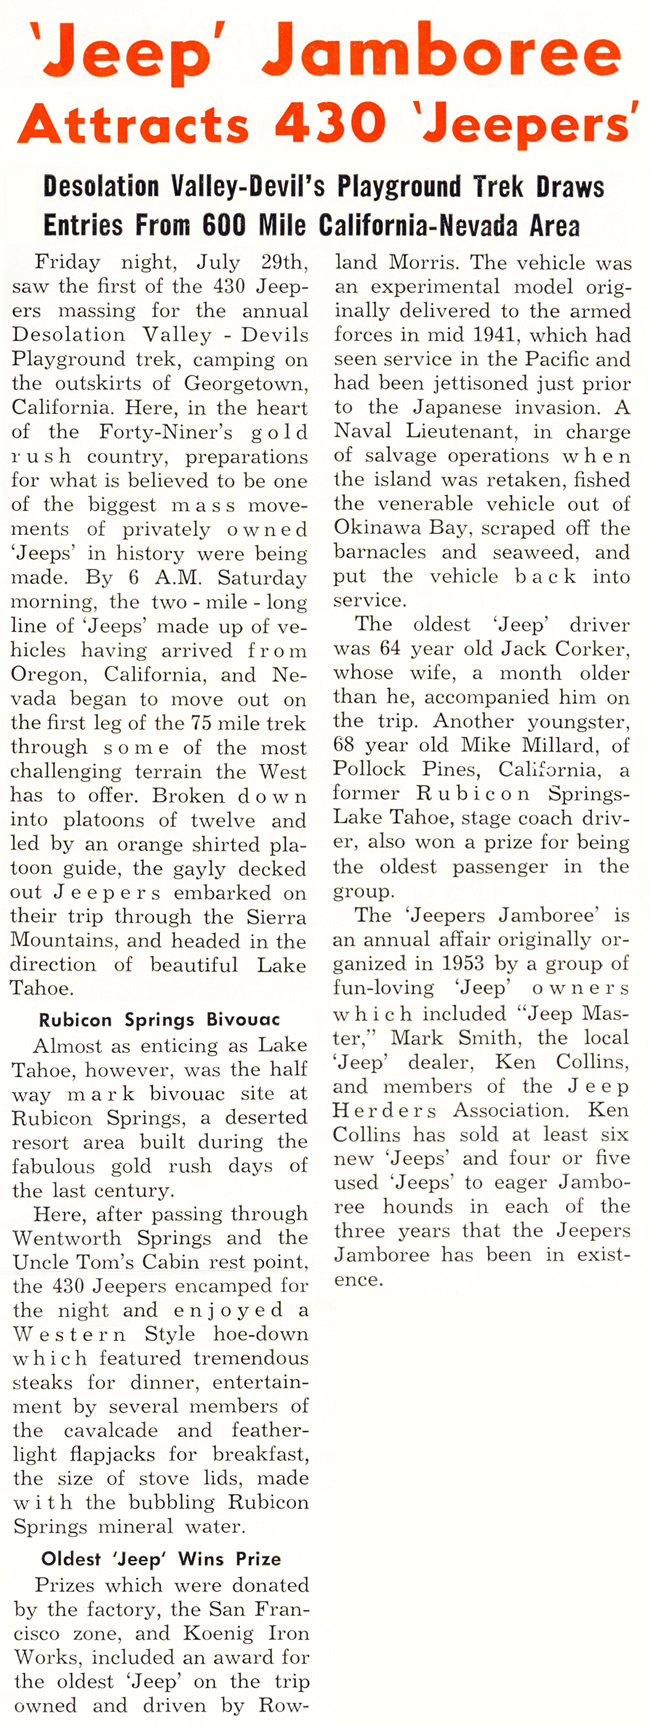 1955-july-aug-willys-news-jeep-jeep-jamboree-text